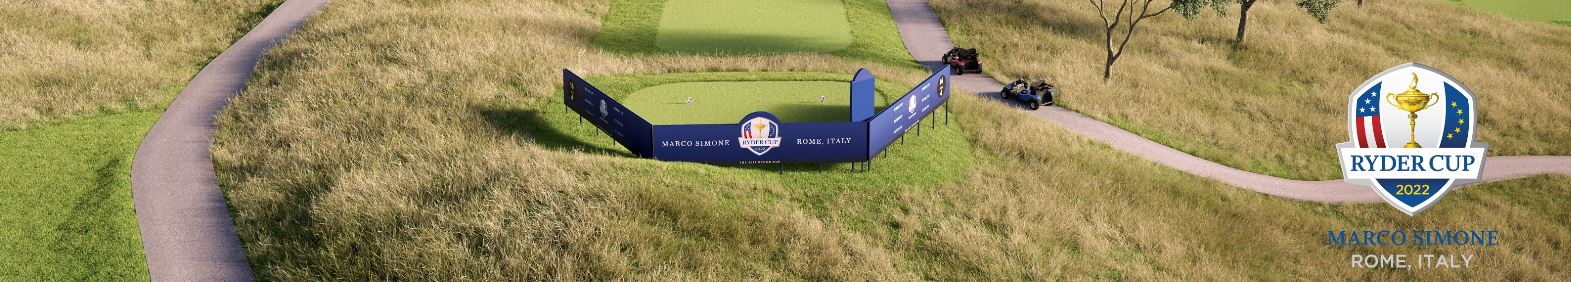 Ryder Cup Italy header